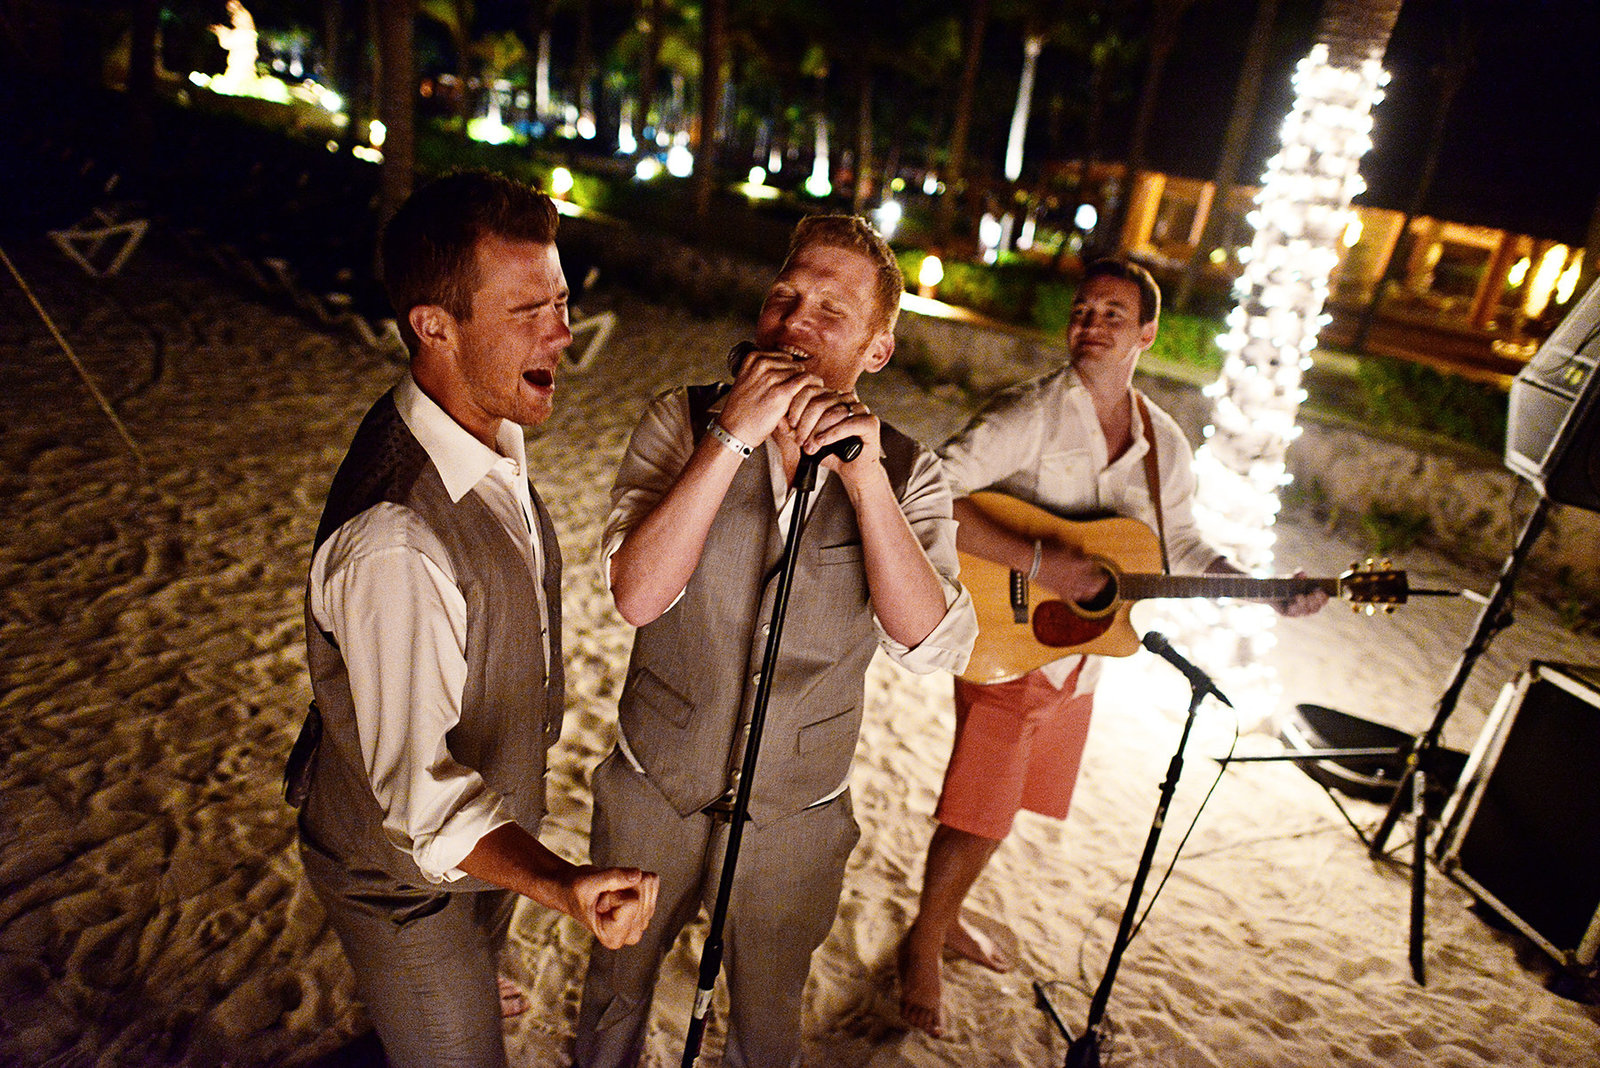 barcelo maya beach resort wedding destination wedding photographer bryan newfield photography 62